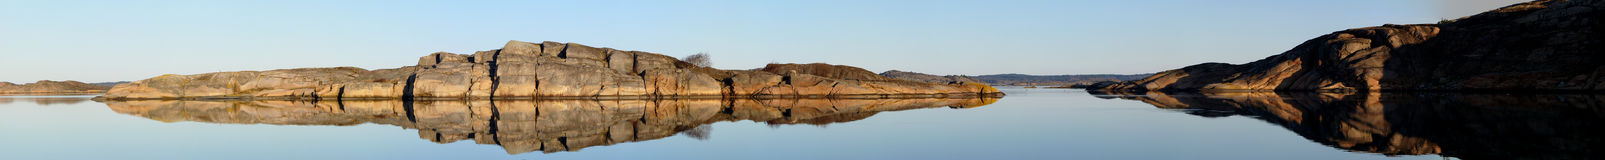 Reflected Water. Panorama of rock being reflected in still water an early morning Royalty Free Stock Image